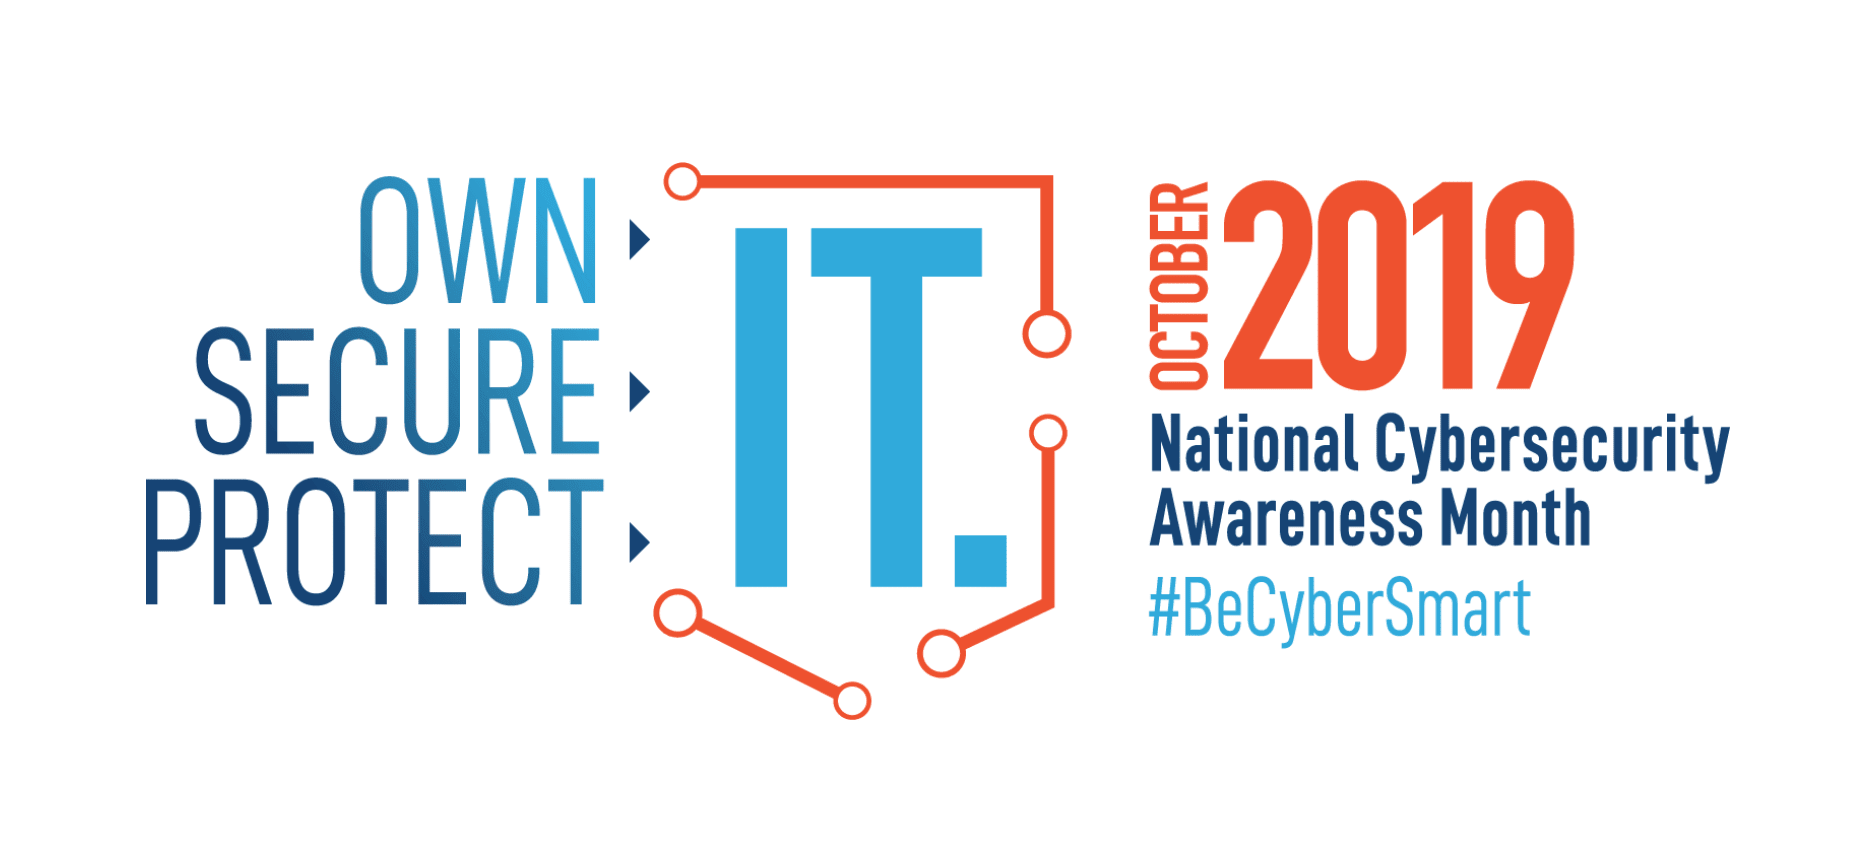 Own IT. Secure IT. Protect IT. National Cyber Security Awareness Month 2019